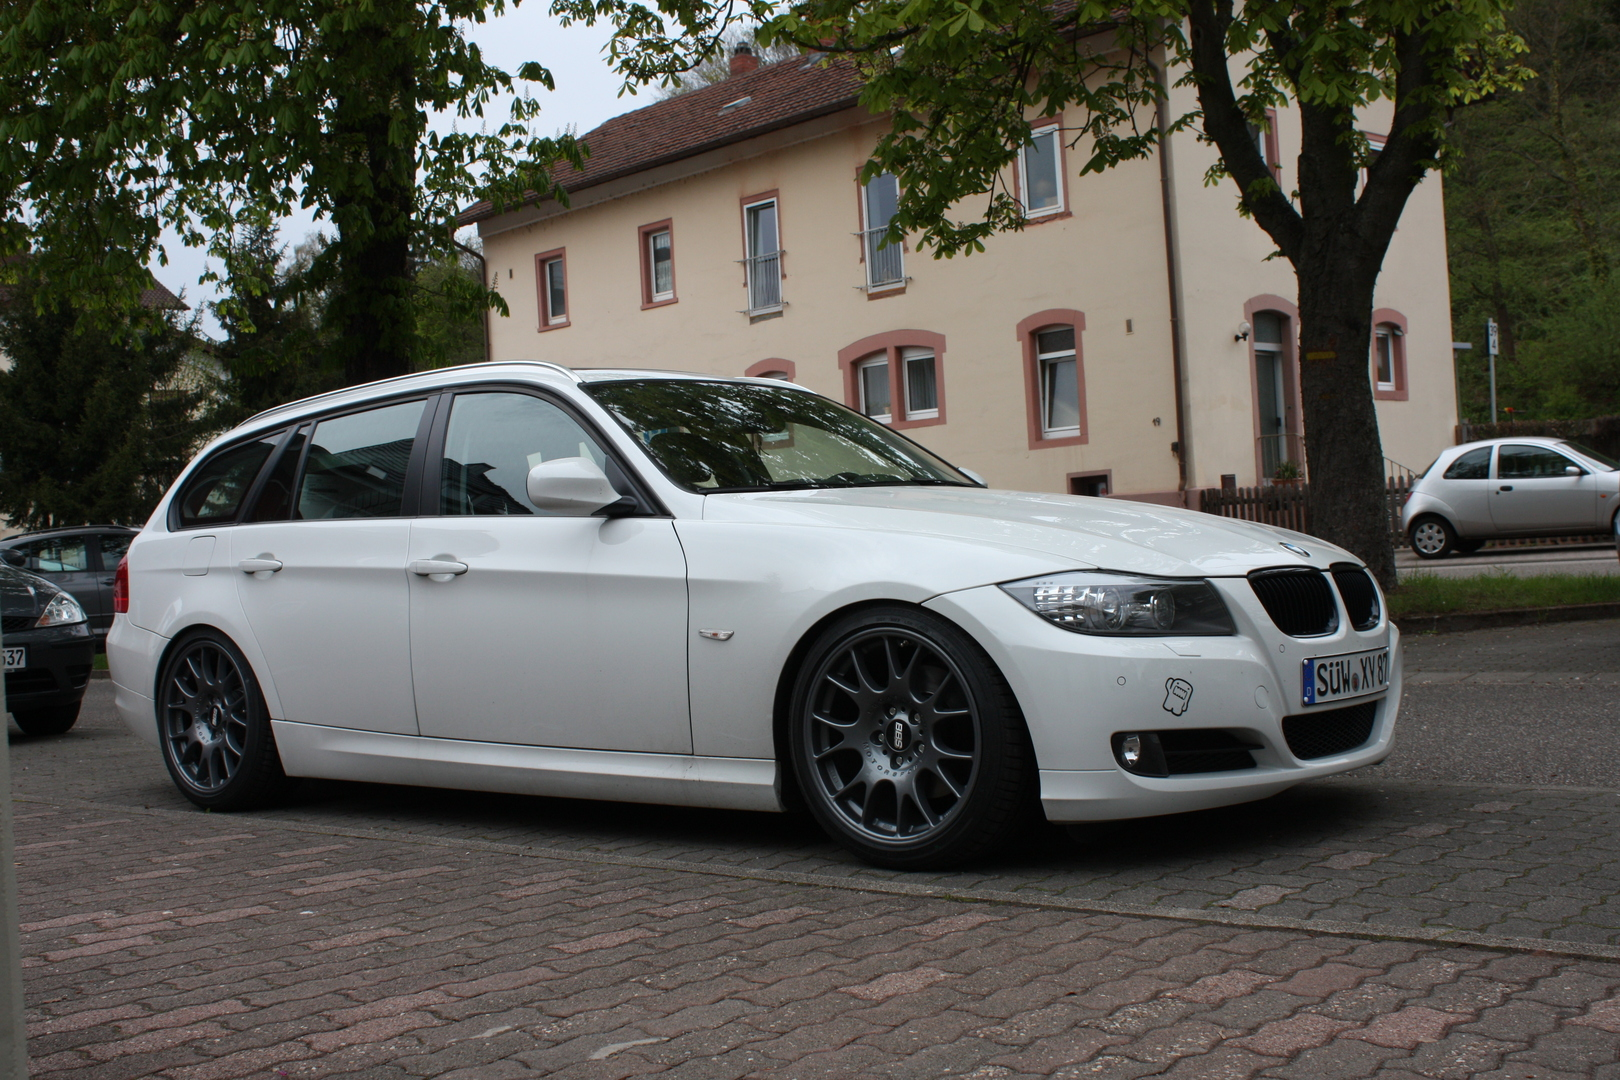 tieferlegung e91 mit federn 3er bmw e90 e91 e92. Black Bedroom Furniture Sets. Home Design Ideas